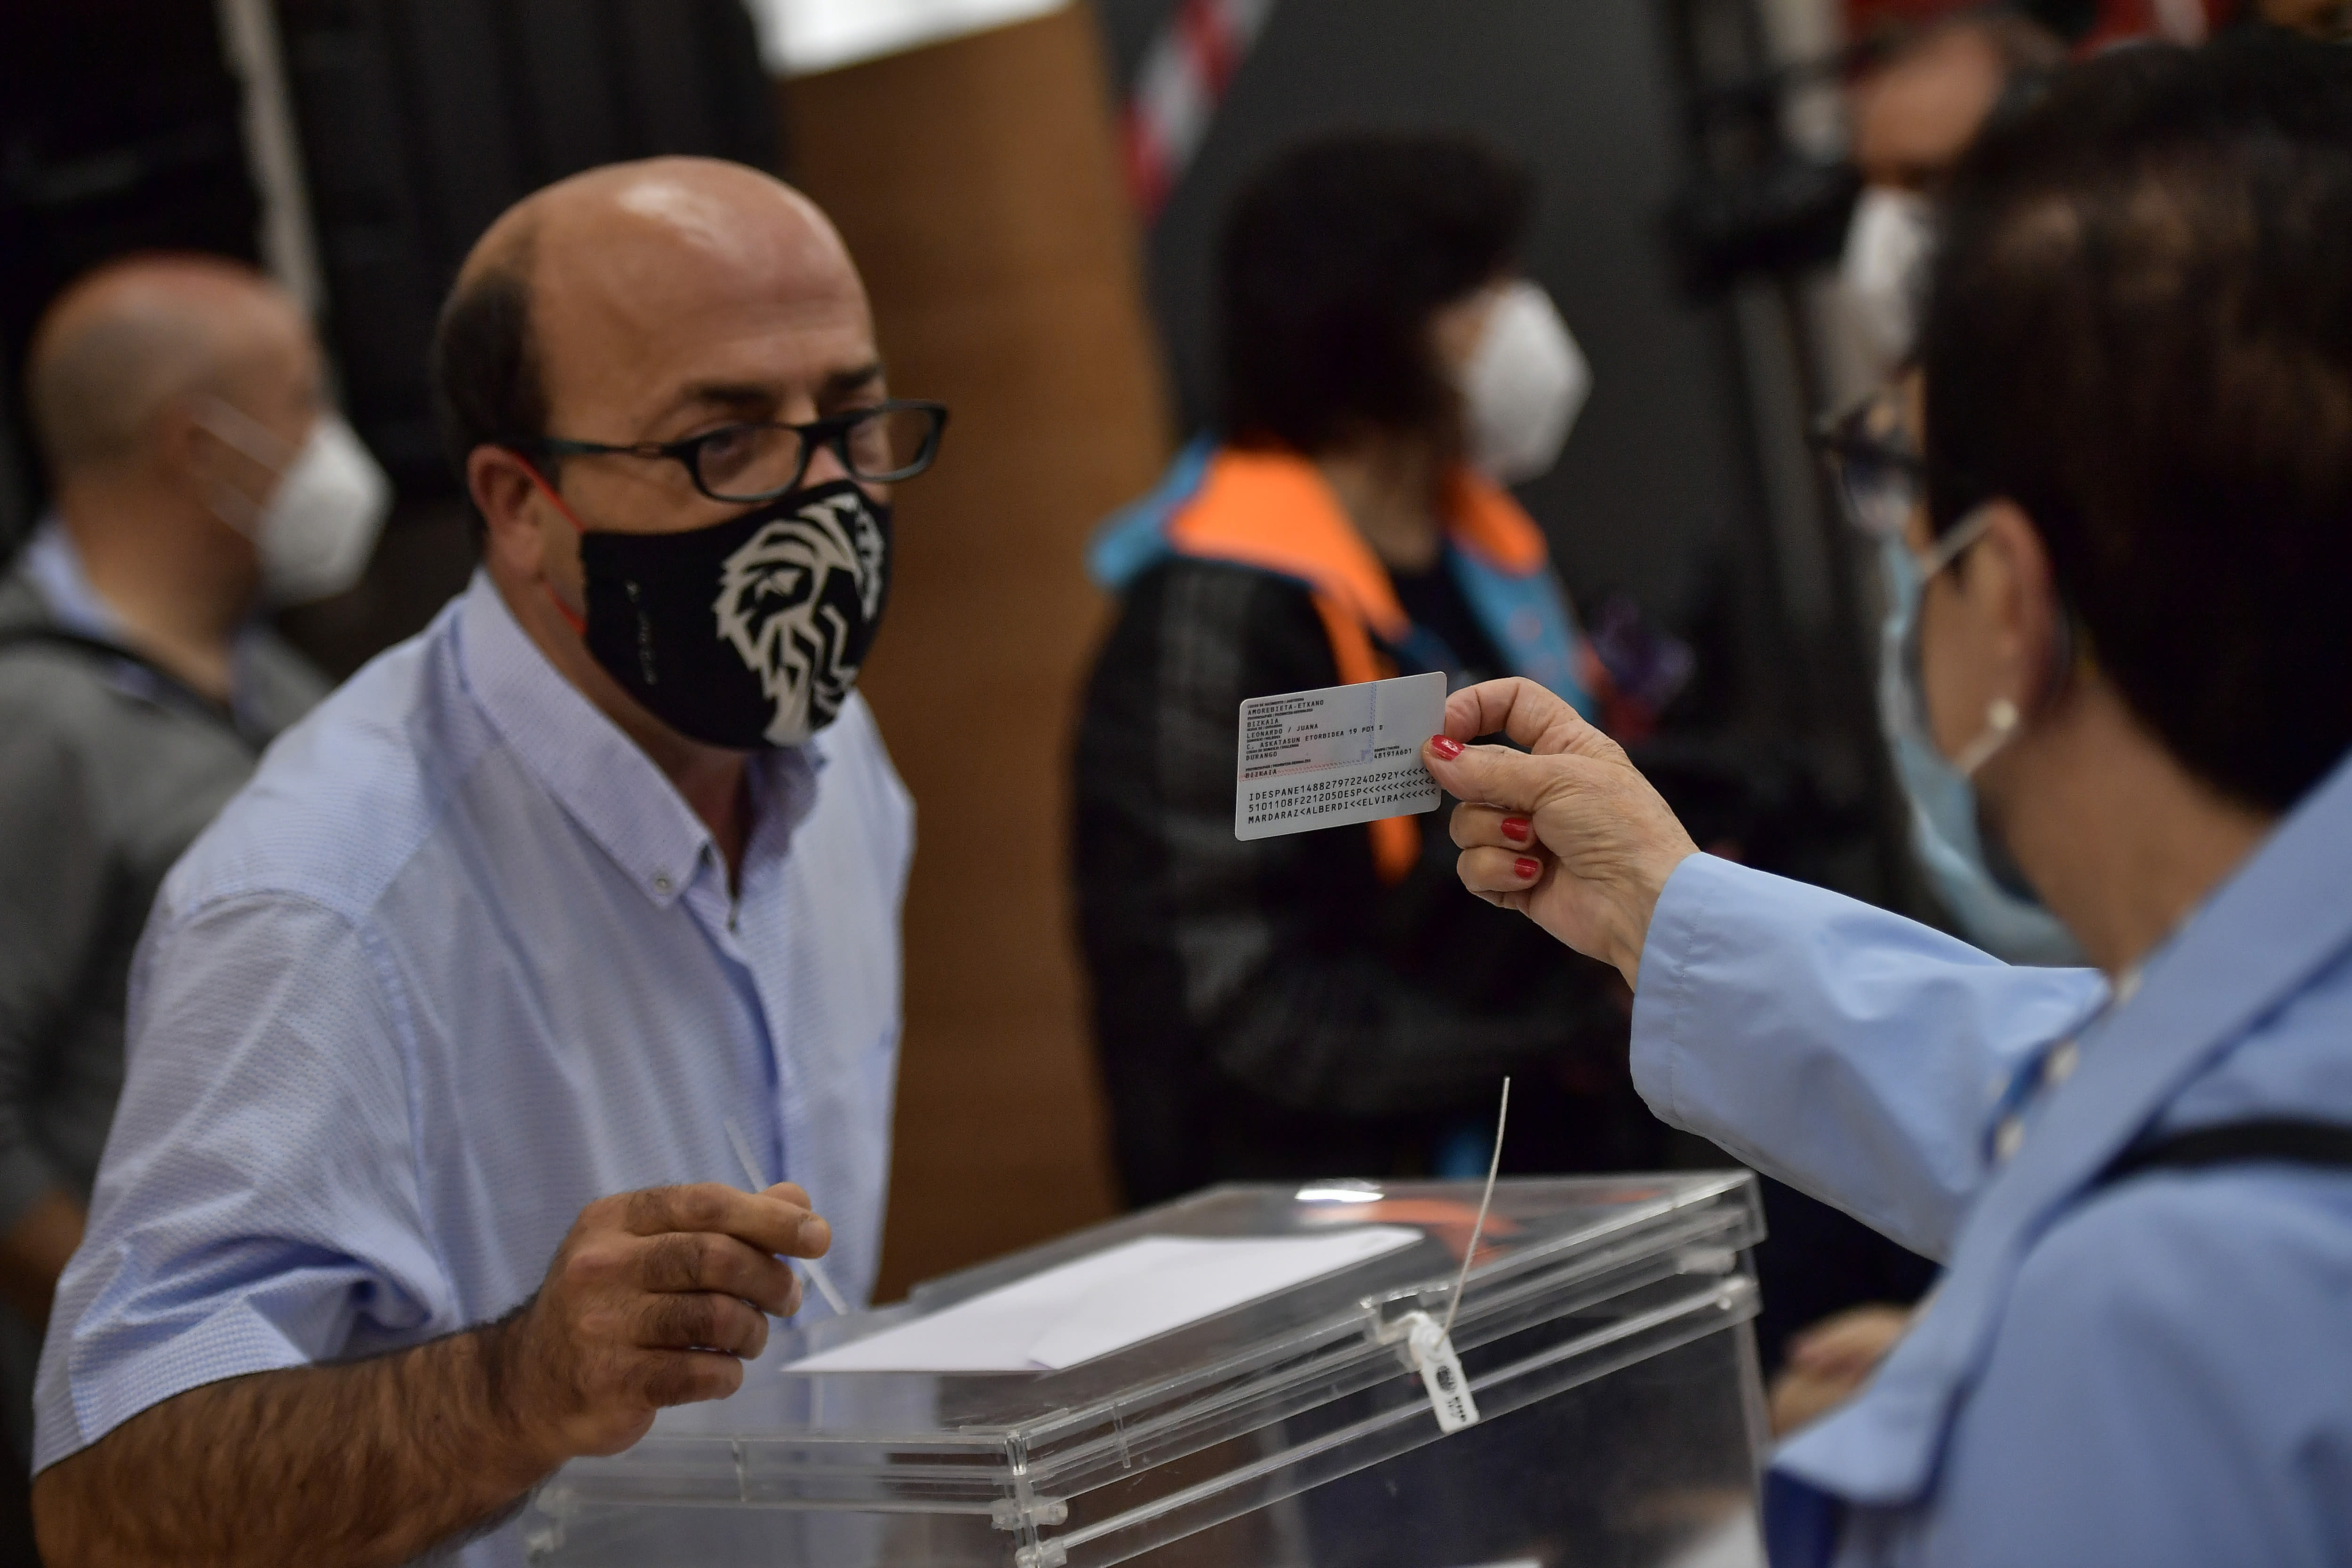 A polling station staff member wears a face mask to help curb the spread of the coronavirus while checking an identity card during the Basque regional election in Durango, northern Spain, Sunday, July 12, 2020. (AP Photo/Alvaro Barrientos)